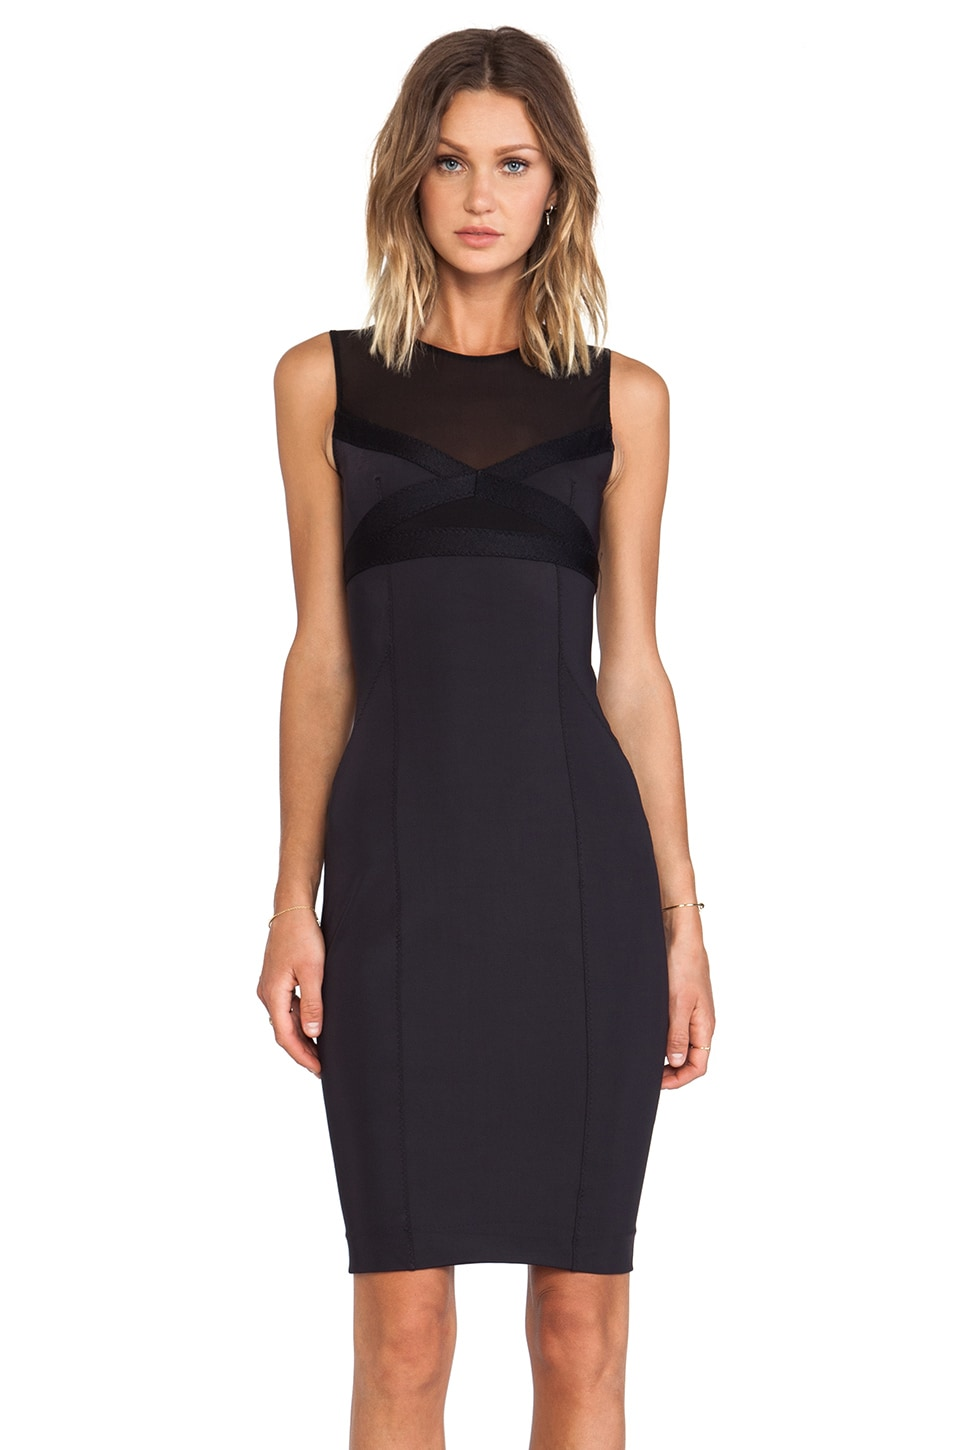 By Malene Birger Wastano Smooth Interlock Dress in Black